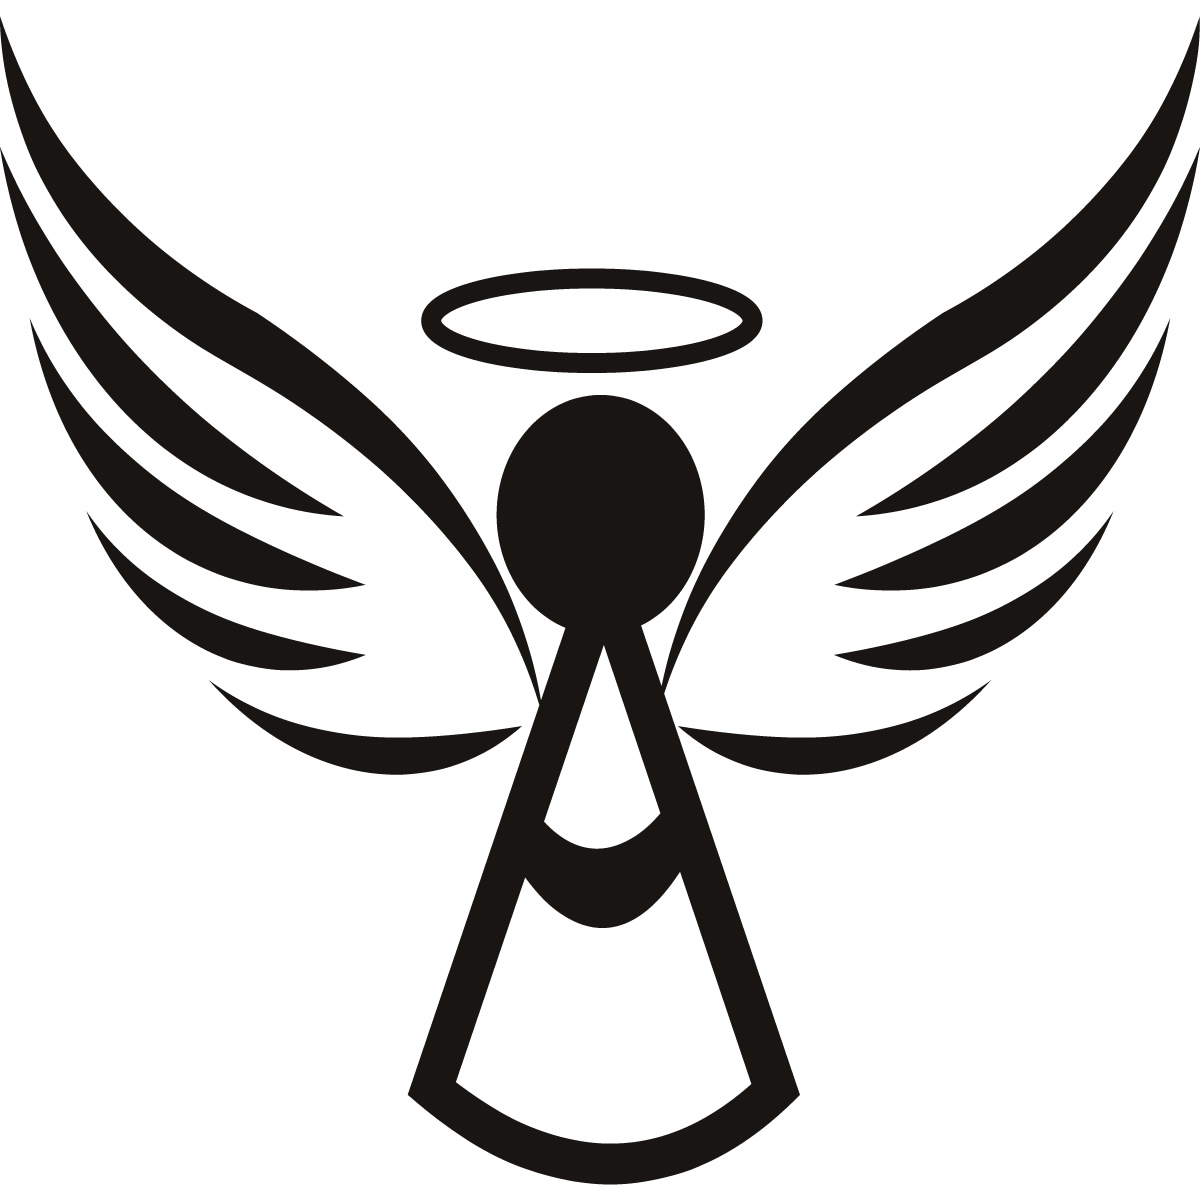 angel wings and halo clip art black and white clipart best angel wings clipart png simple angel wings clipart